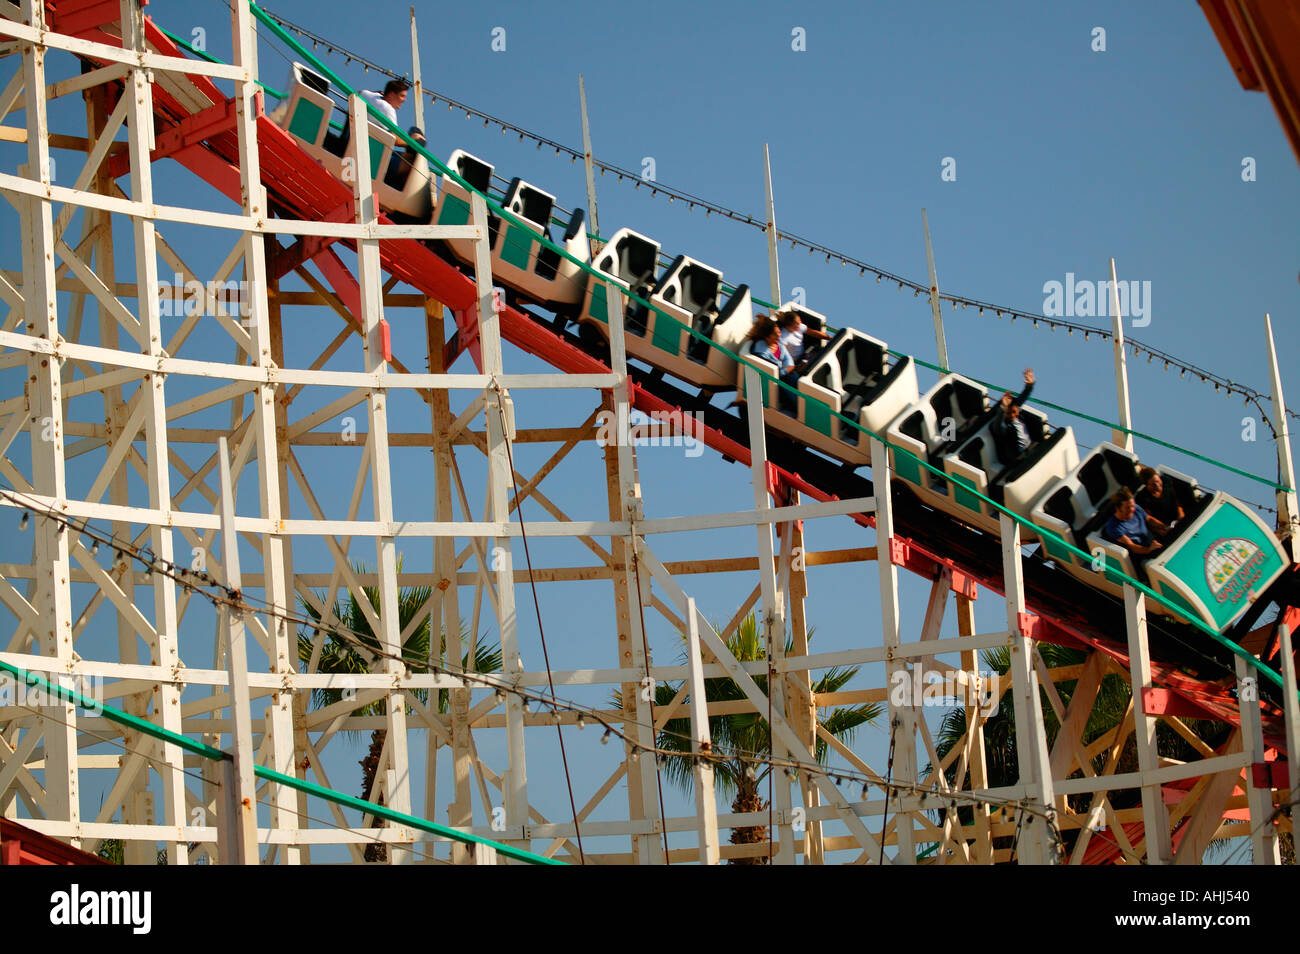 hight resolution of wooden rollercoaster belmont park mission beach san diego california